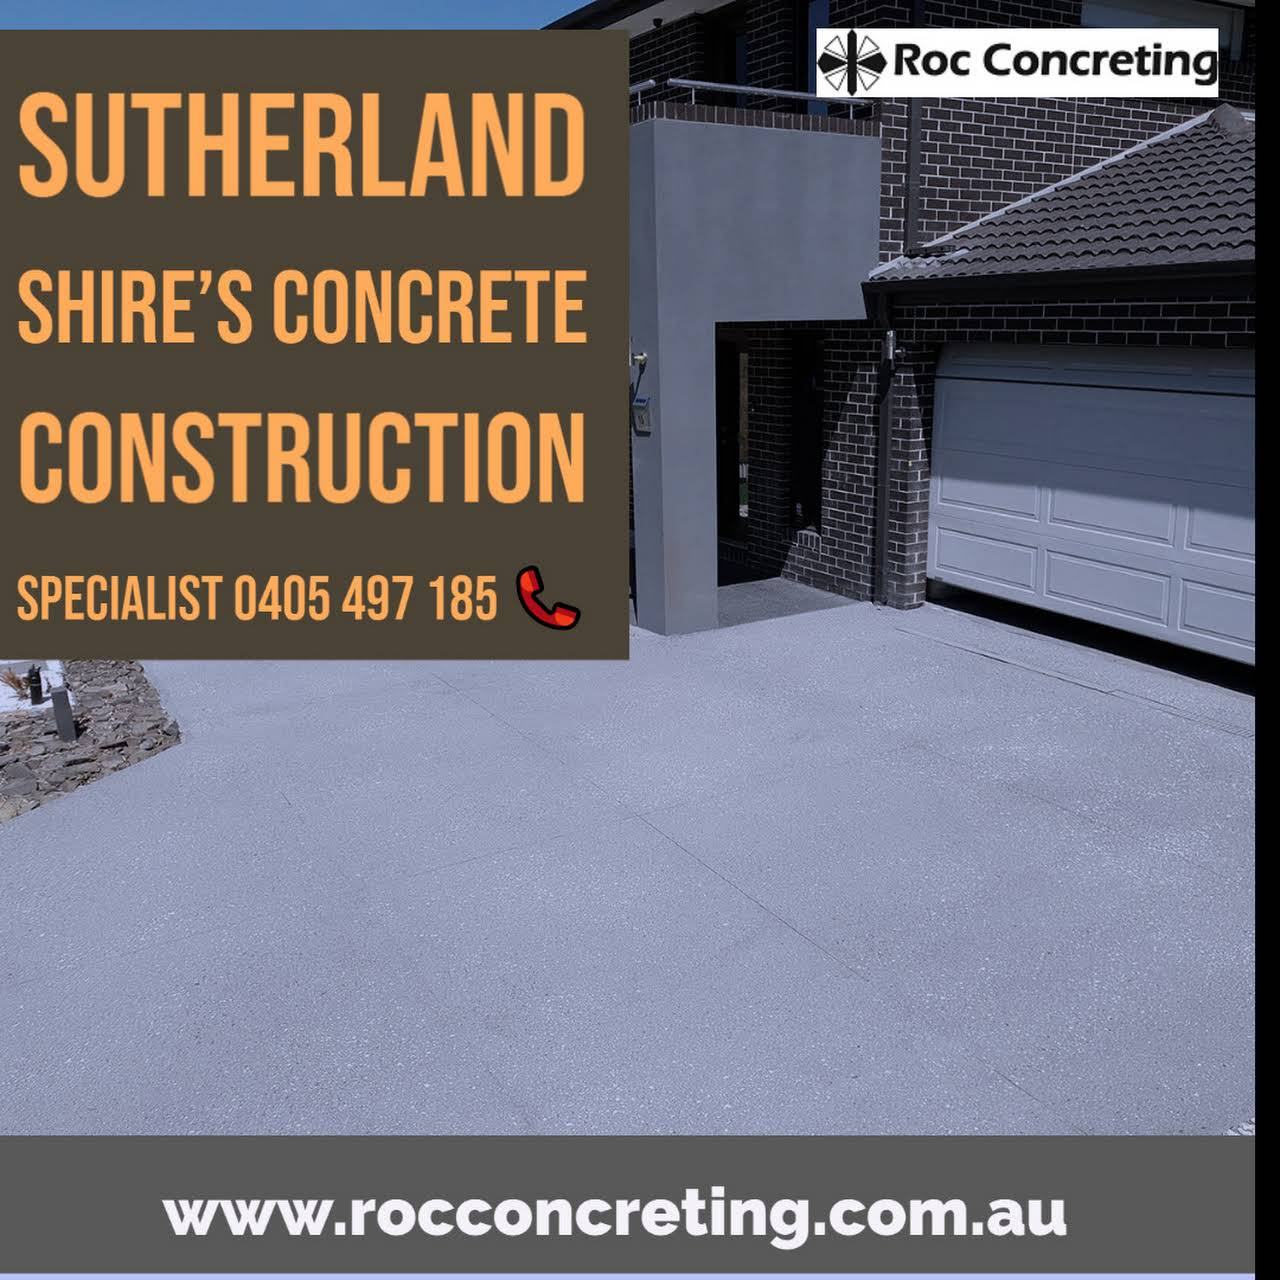 shire concretersimage concreters near me in sutherland shirepicture shire concrete servicesimage